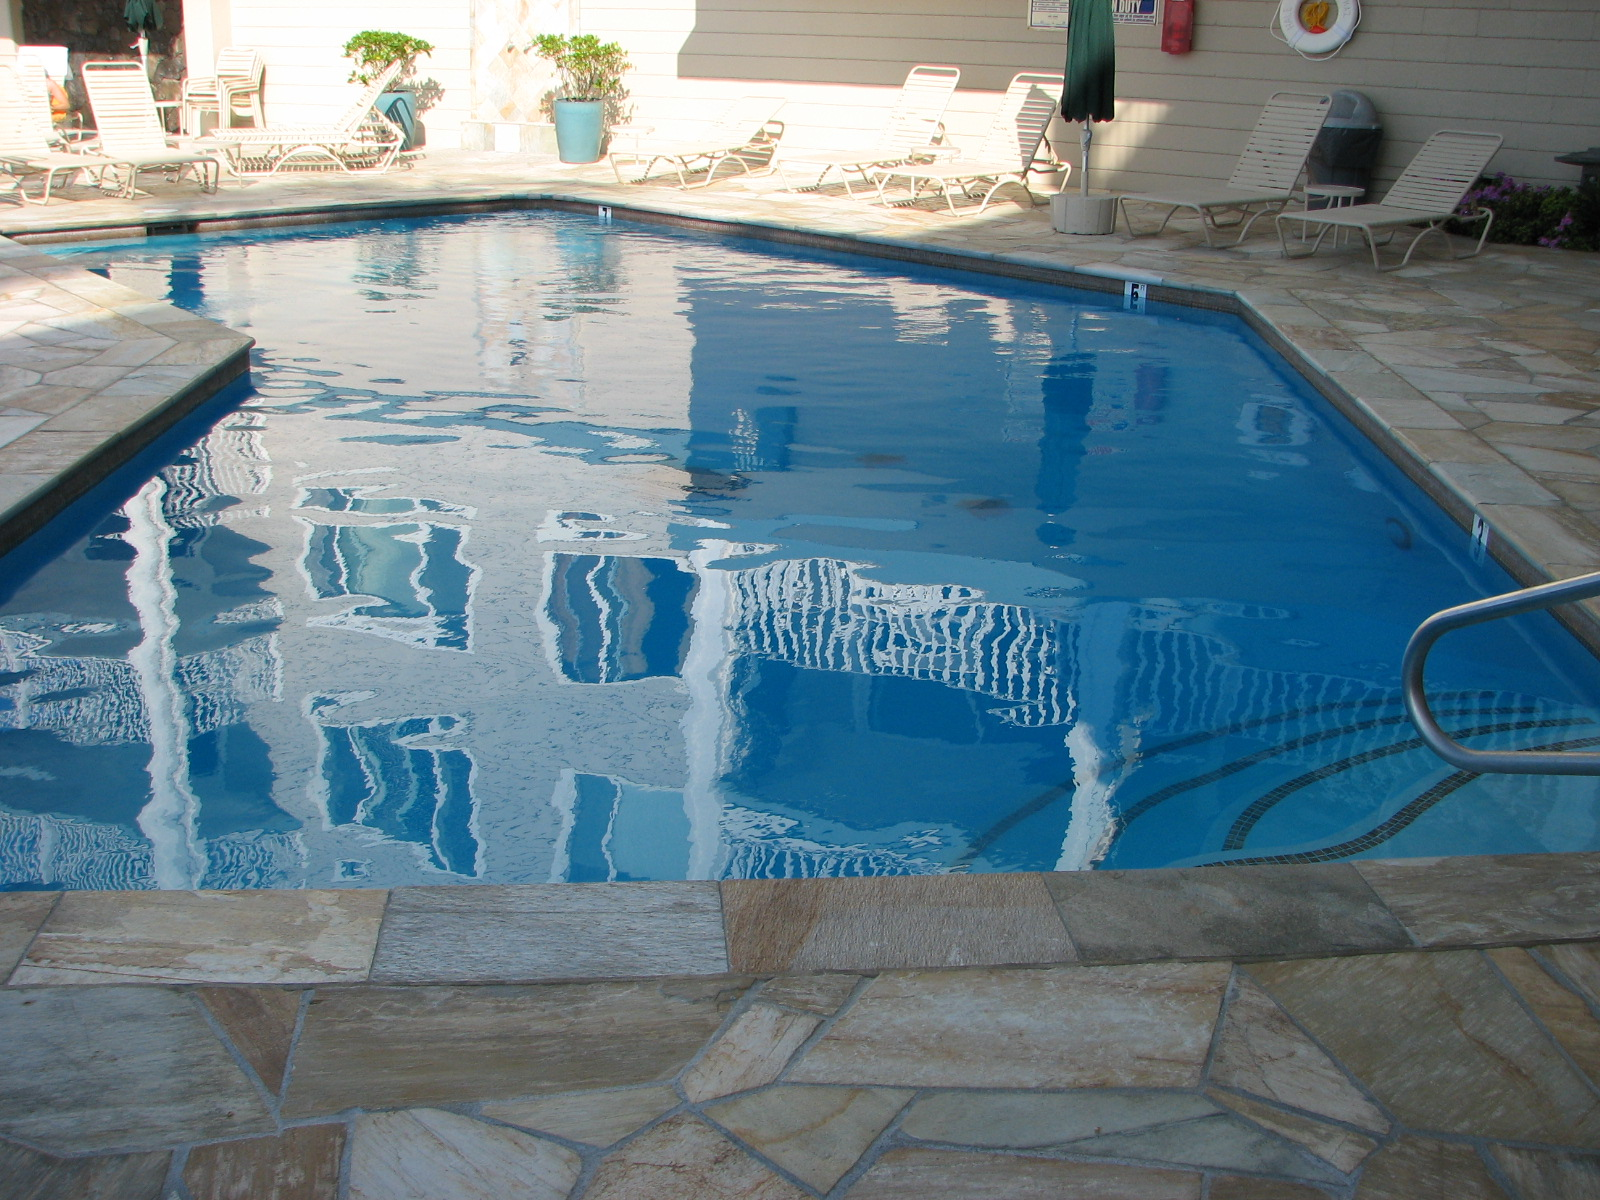 Just slip on into our pool.